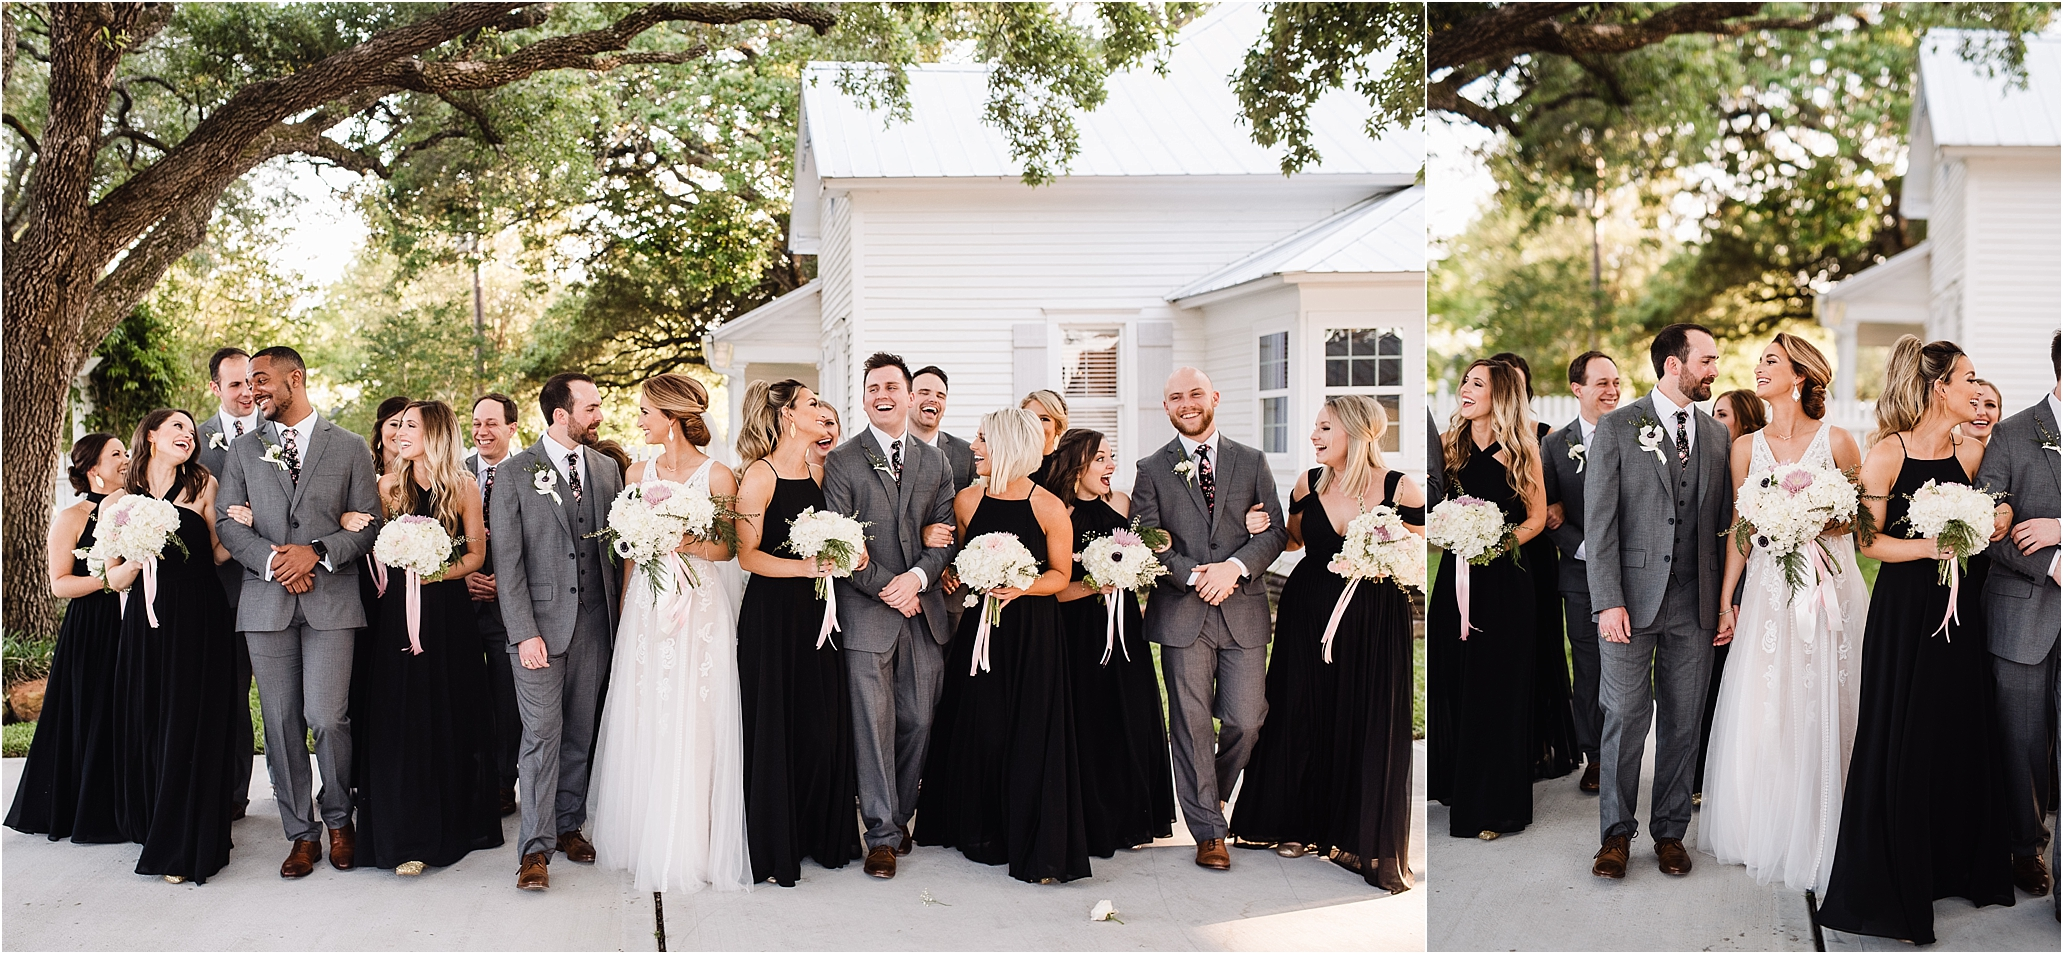 PattisonHouse_TexasWeddingPhotographer_CarlyCrockett&MattBrownWedding_0093.jpg